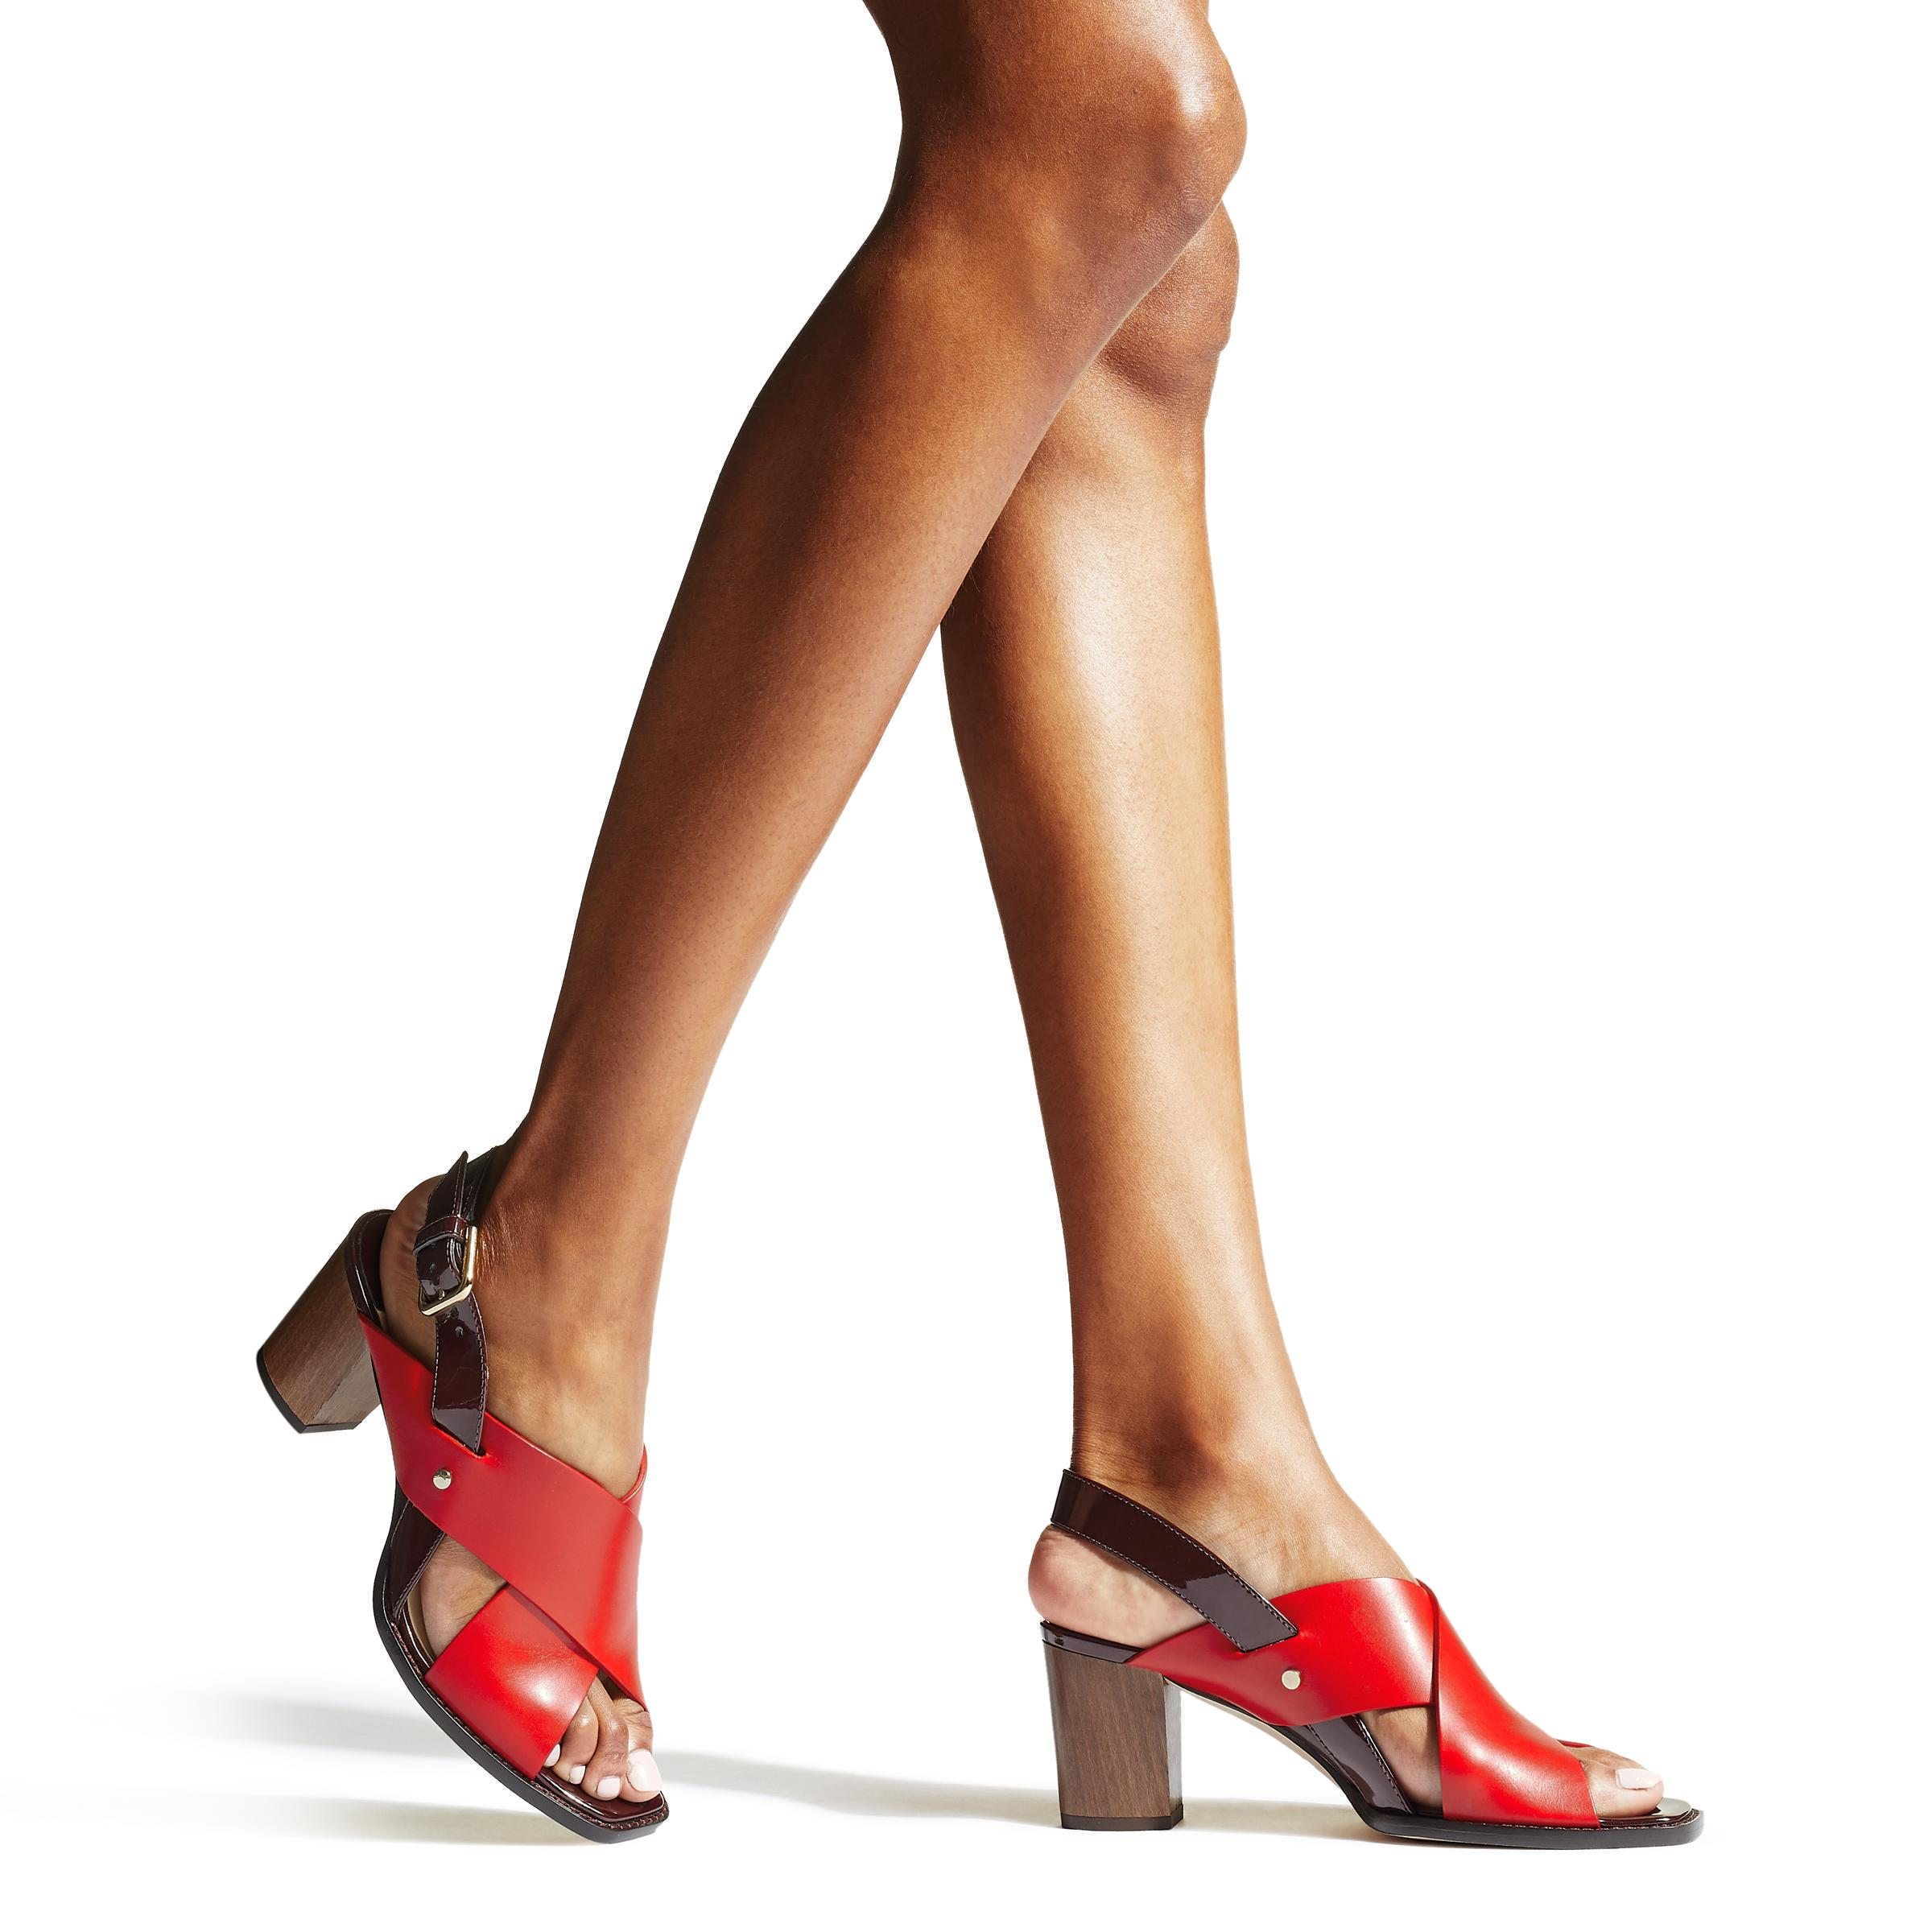 Jimmy Choo Aix 65 Sandals in Red - Save